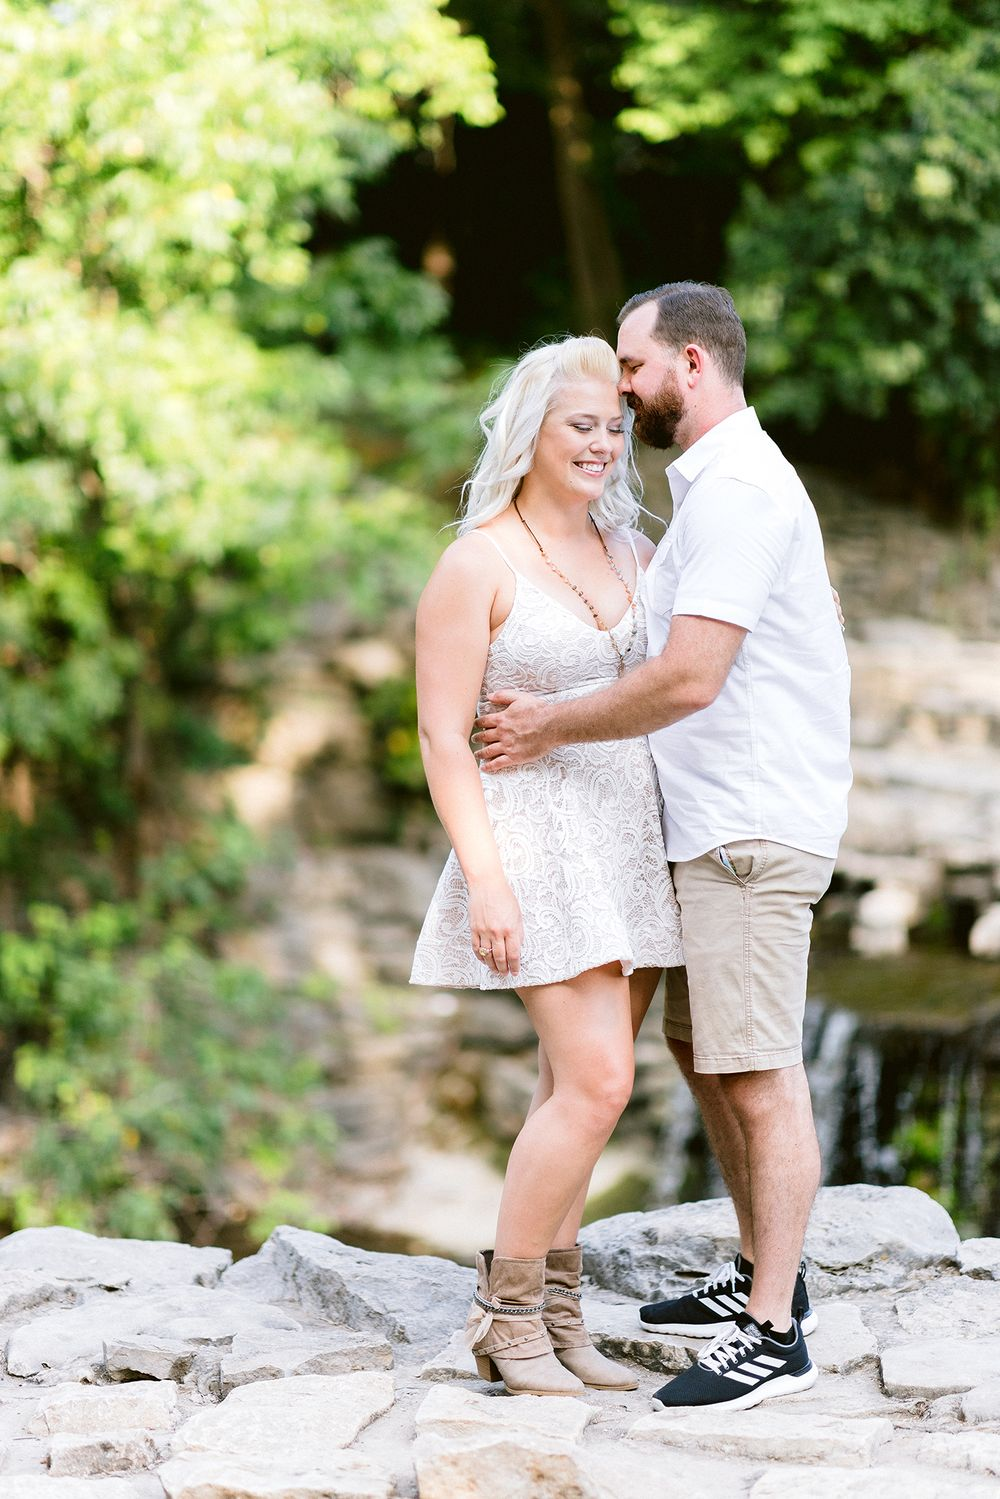 Elizabeth Couch Photography Prairie creek engagement photos waterfall romantic